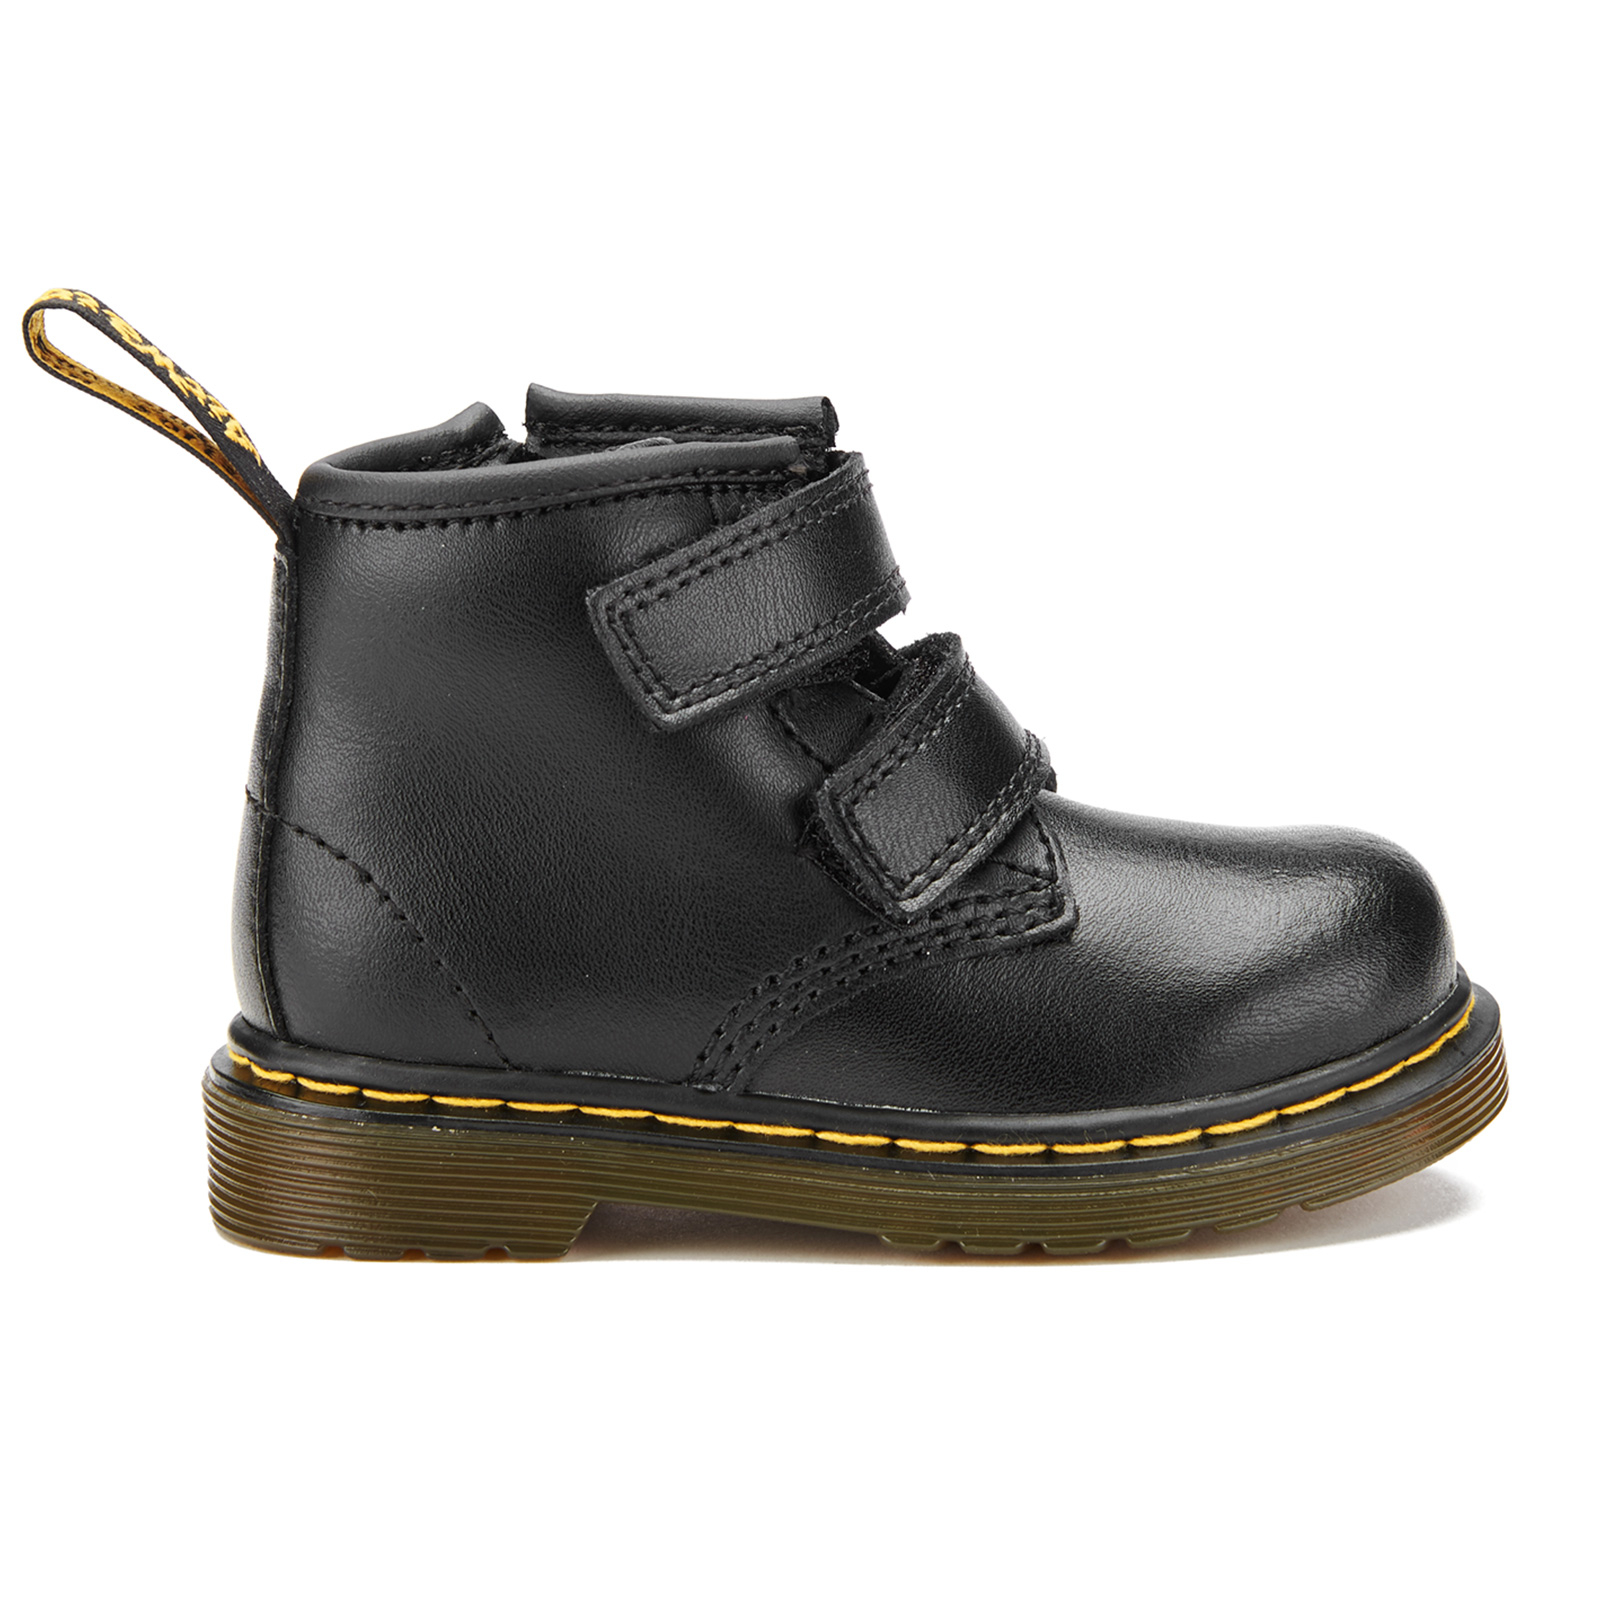 Dr. Martens Toddlers' Brooklee BV Velcro Leather Boots Black